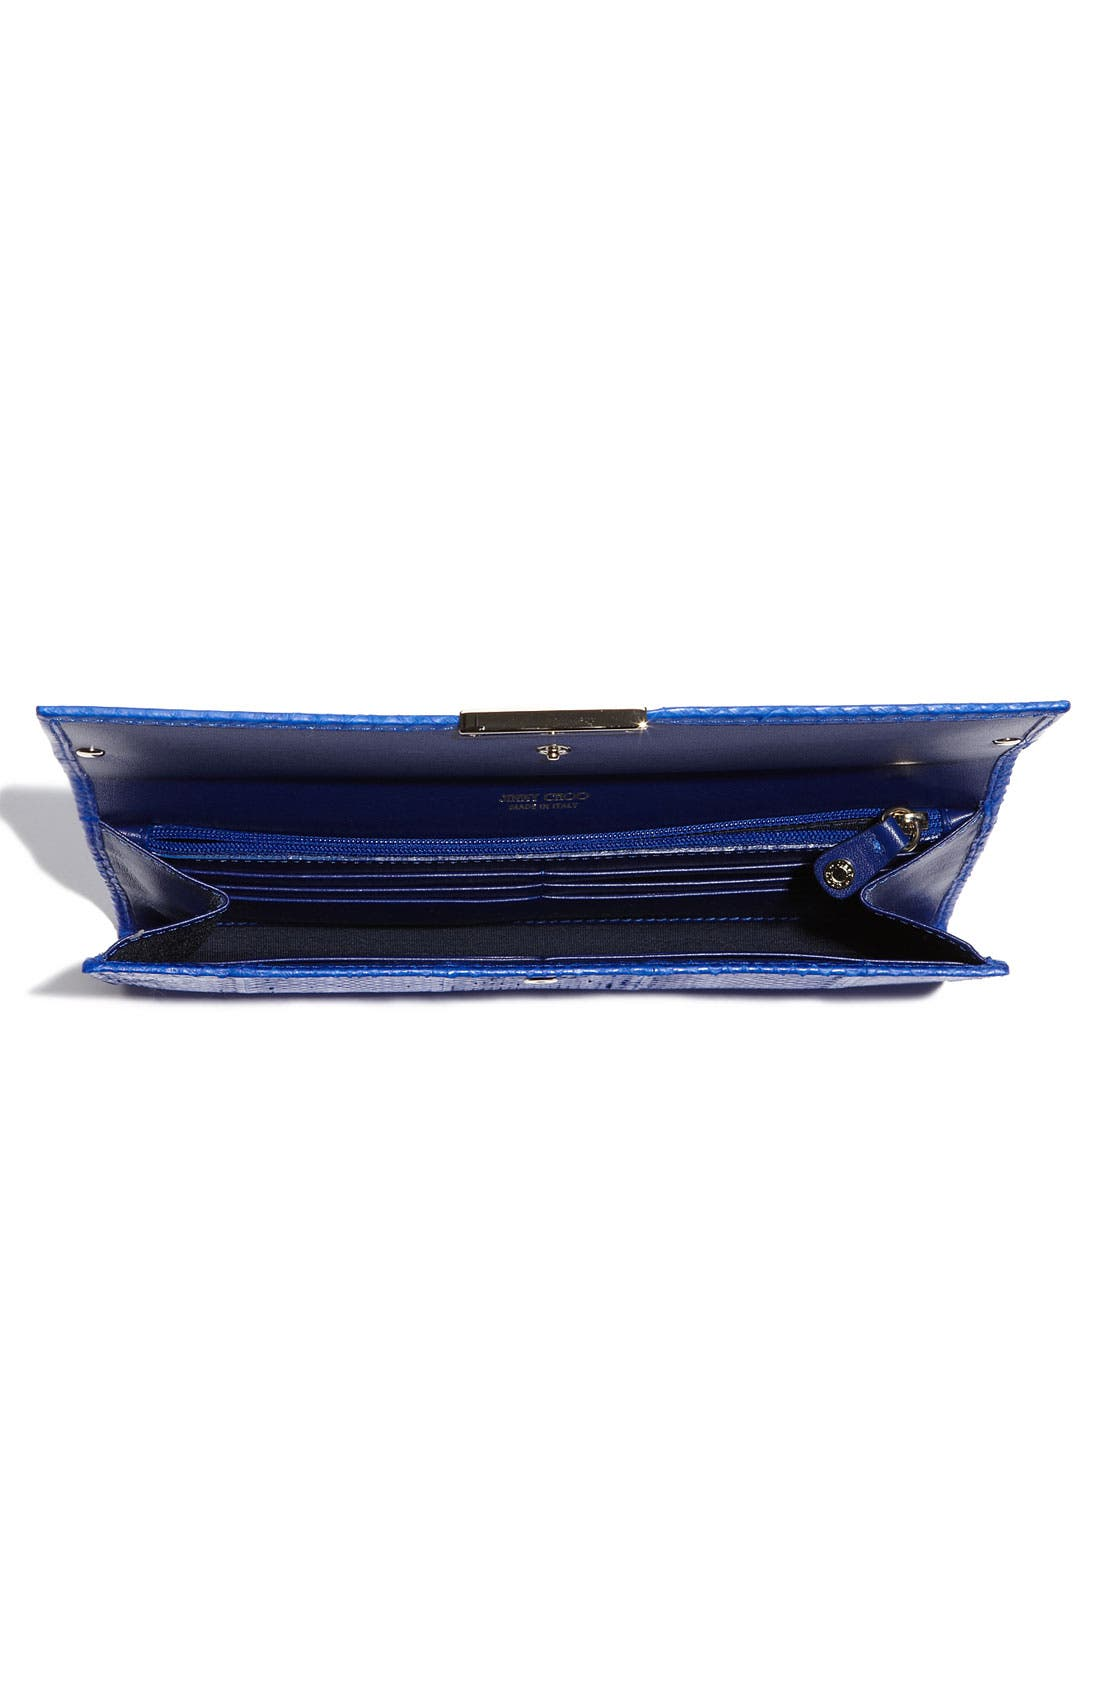 Alternate Image 3  - Jimmy Choo 'Reese' Embossed Leather Clutch